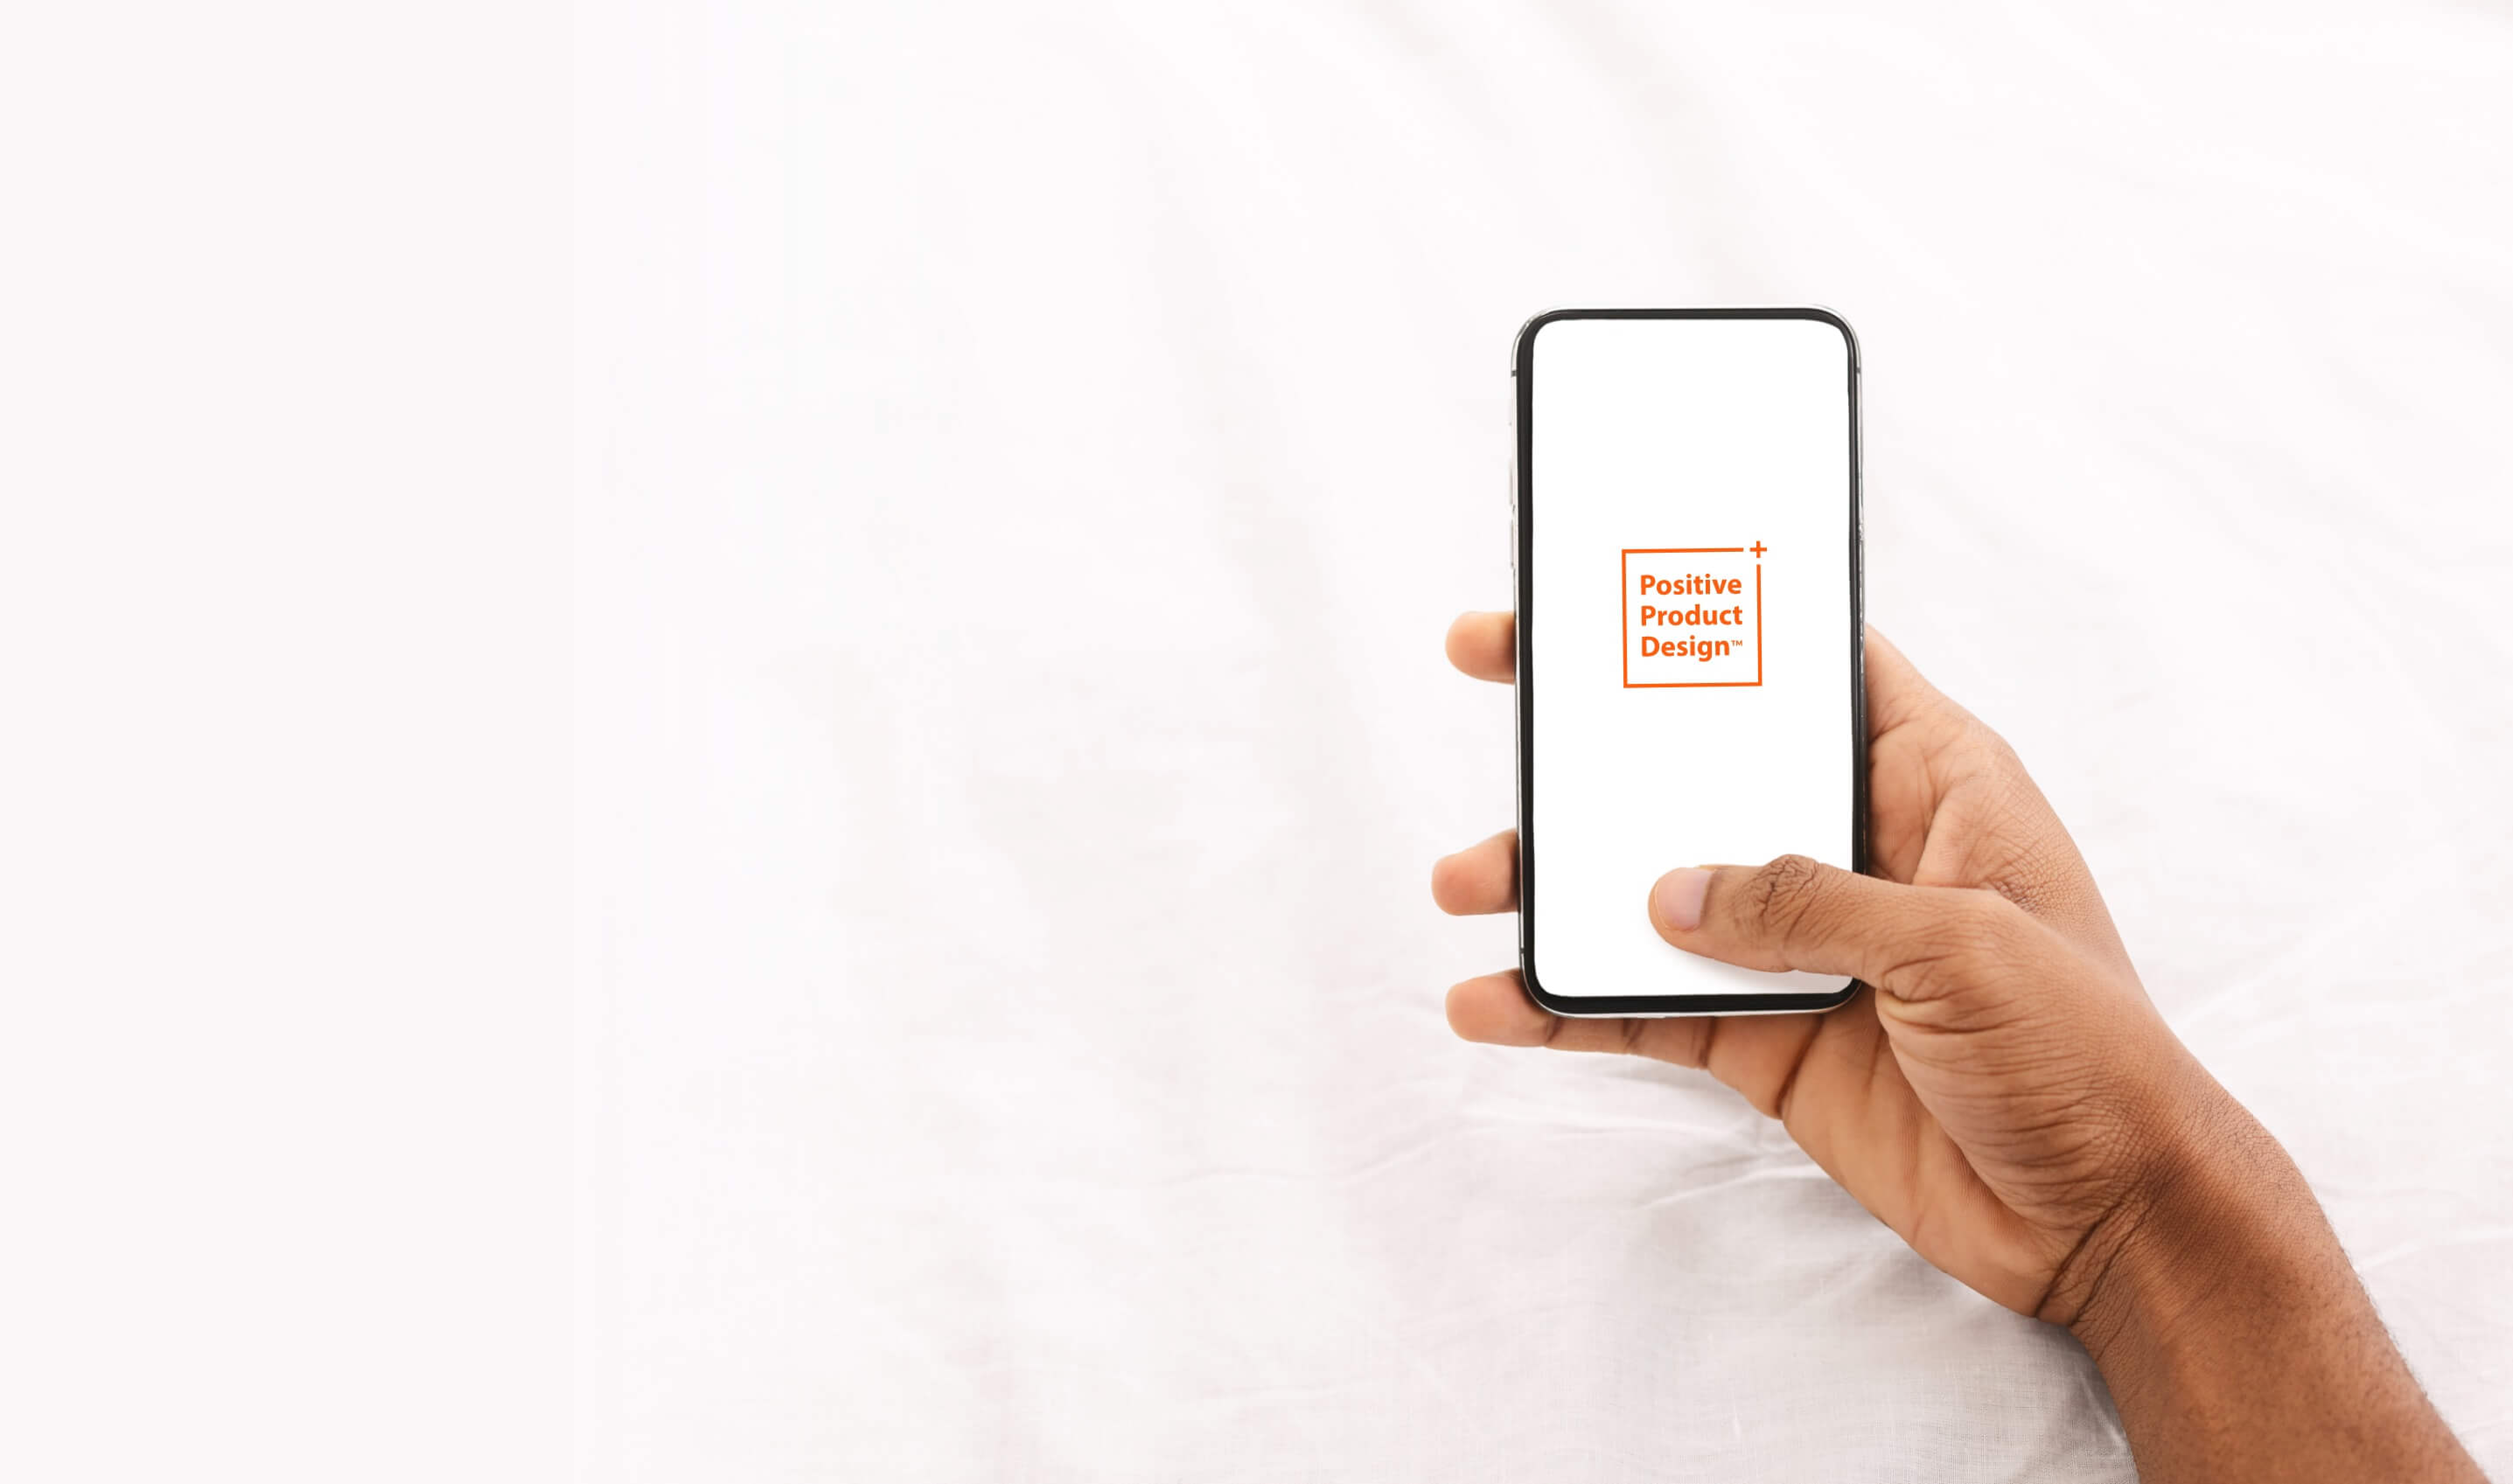 Man Holding an iPhone X In His Hand With the Positive Product Design Logo On The Screen